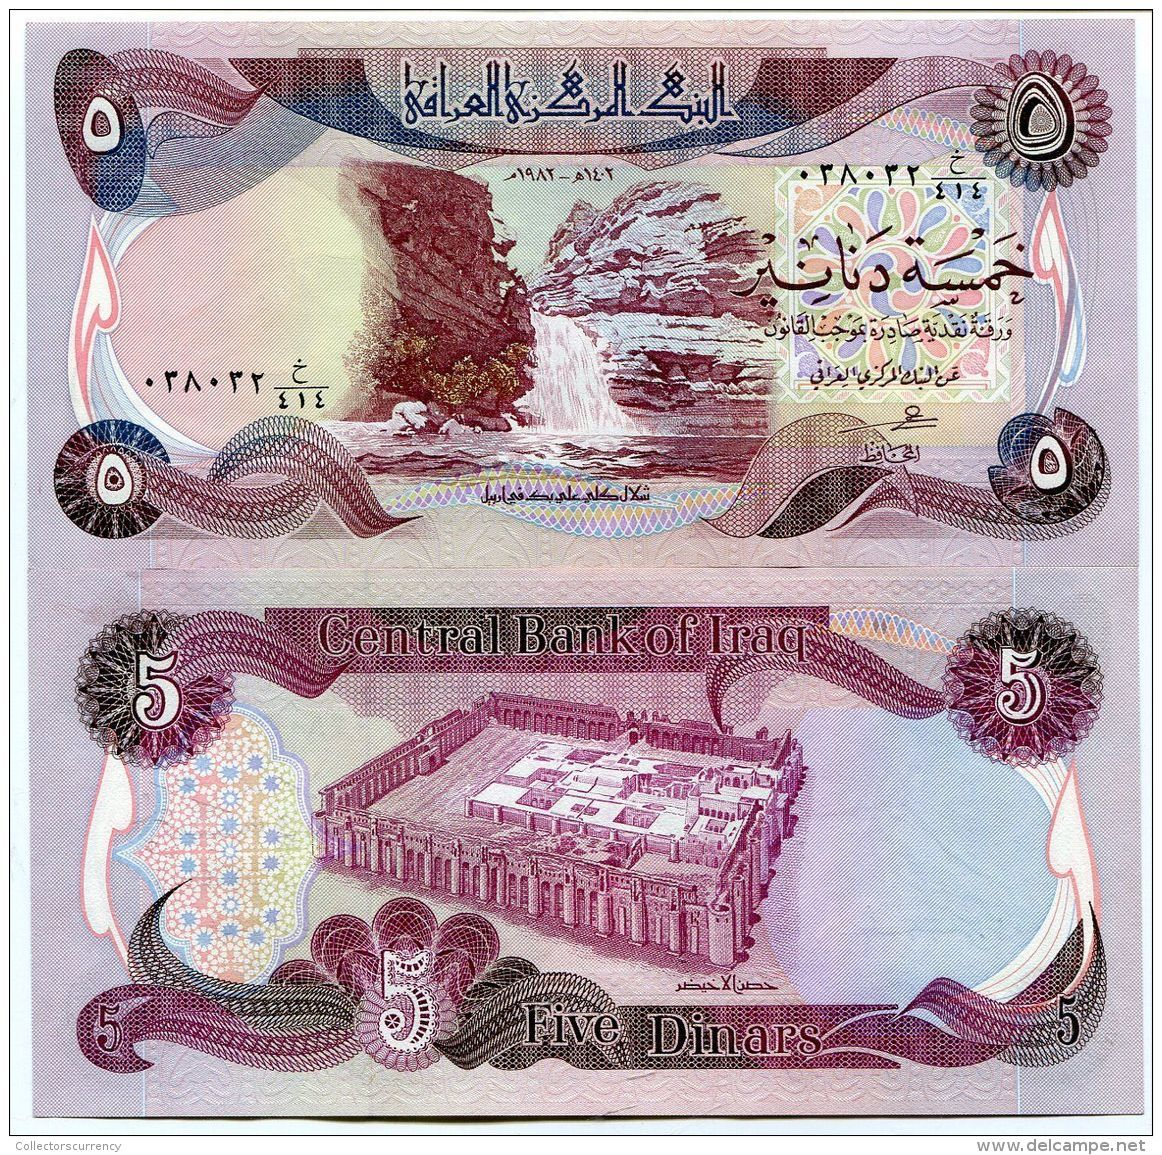 P70 UNC Iraq 5 Dinars 1982 BANK NOTE PAPER MONEY - SEQUENTIALLY NUMBERED - Iraq